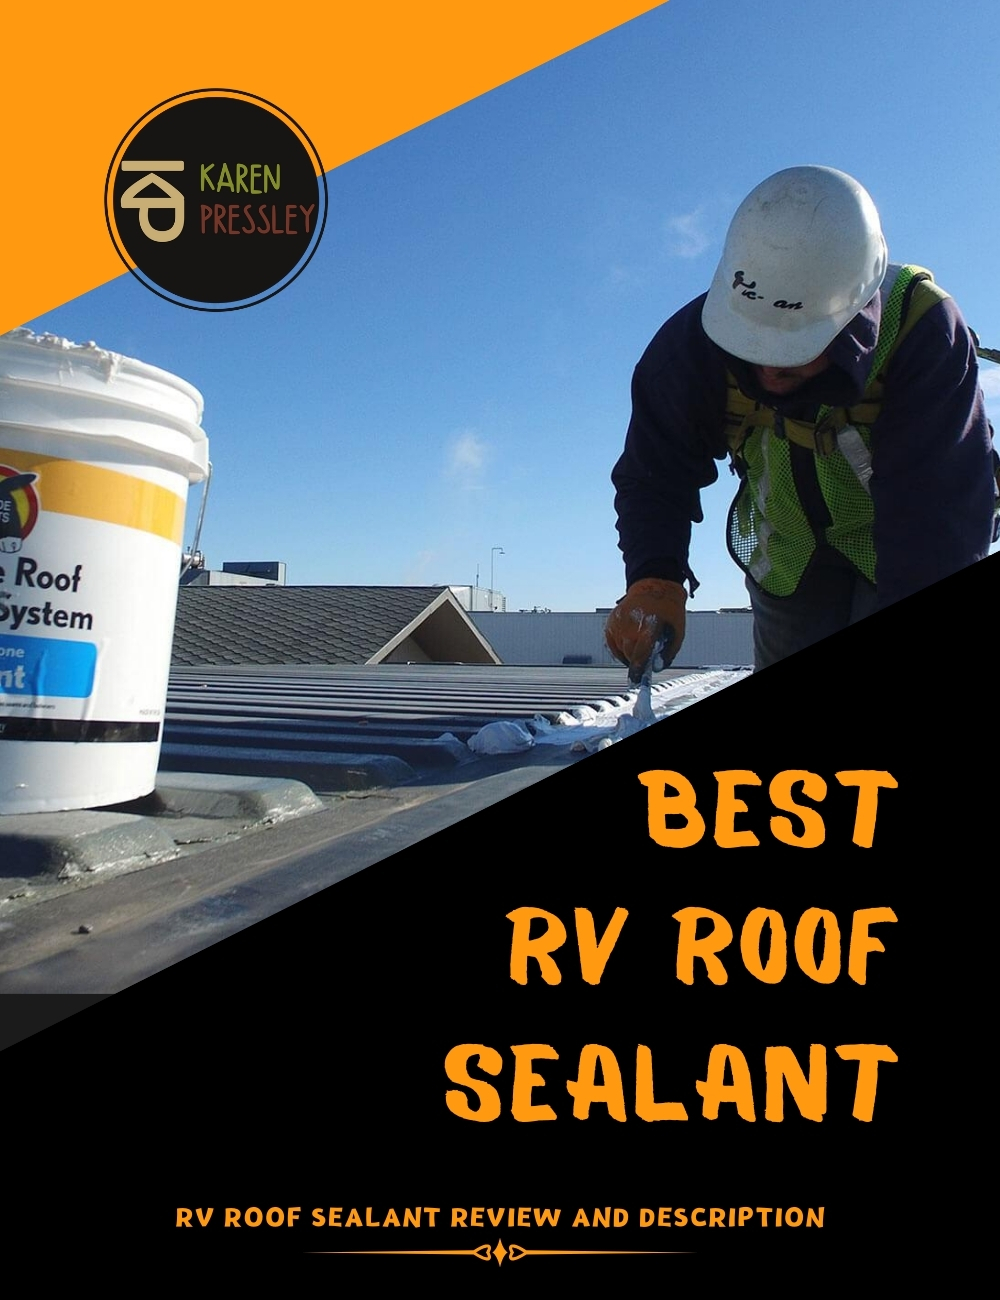 Best RV Roof Sealant (RV Roof Sealant Review and Description)